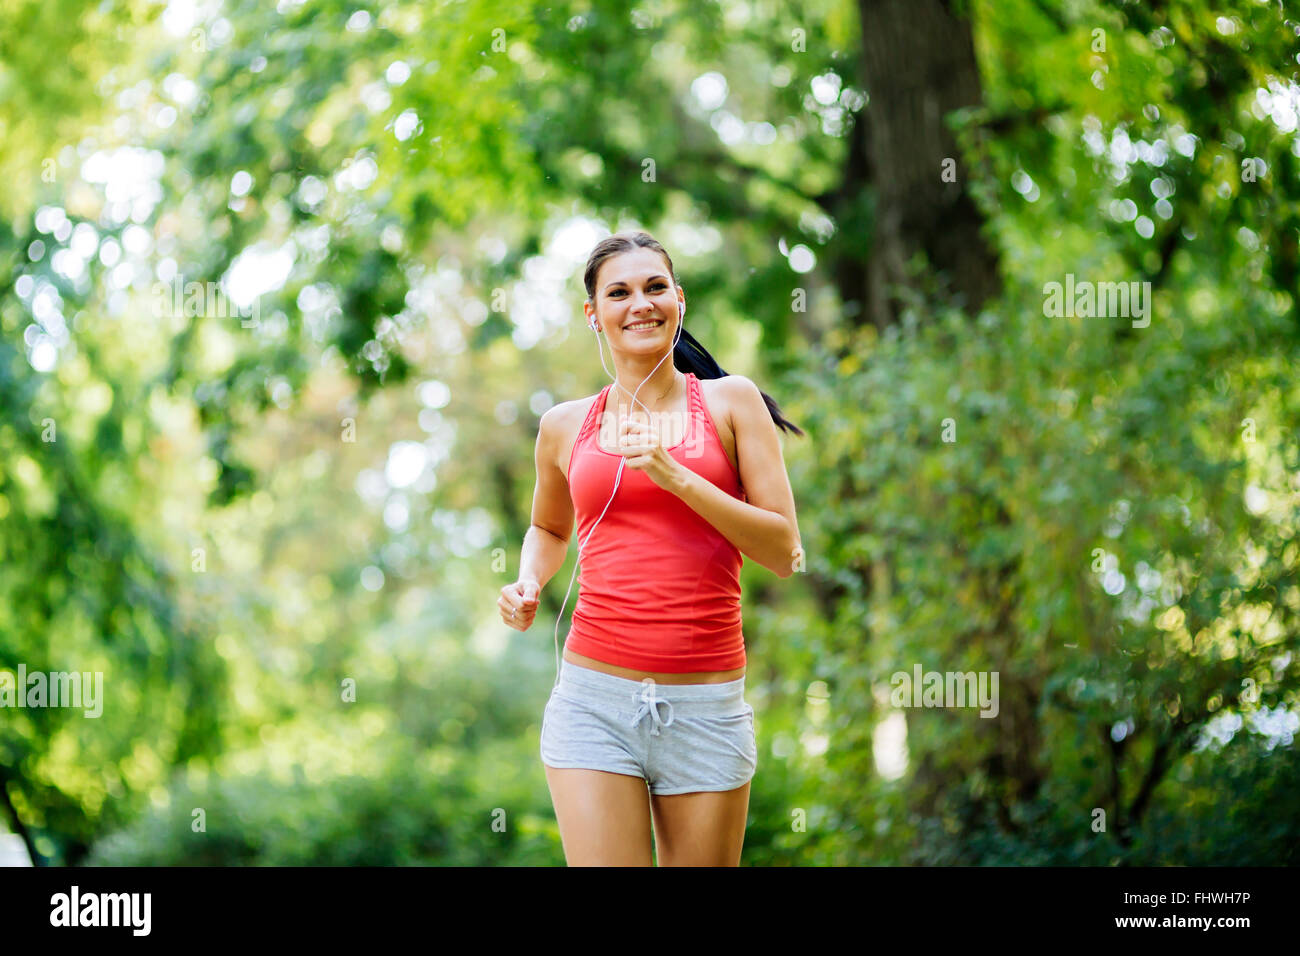 Young beautiful athlete jogging in park and listening to some music while pursuing activity - Stock Image